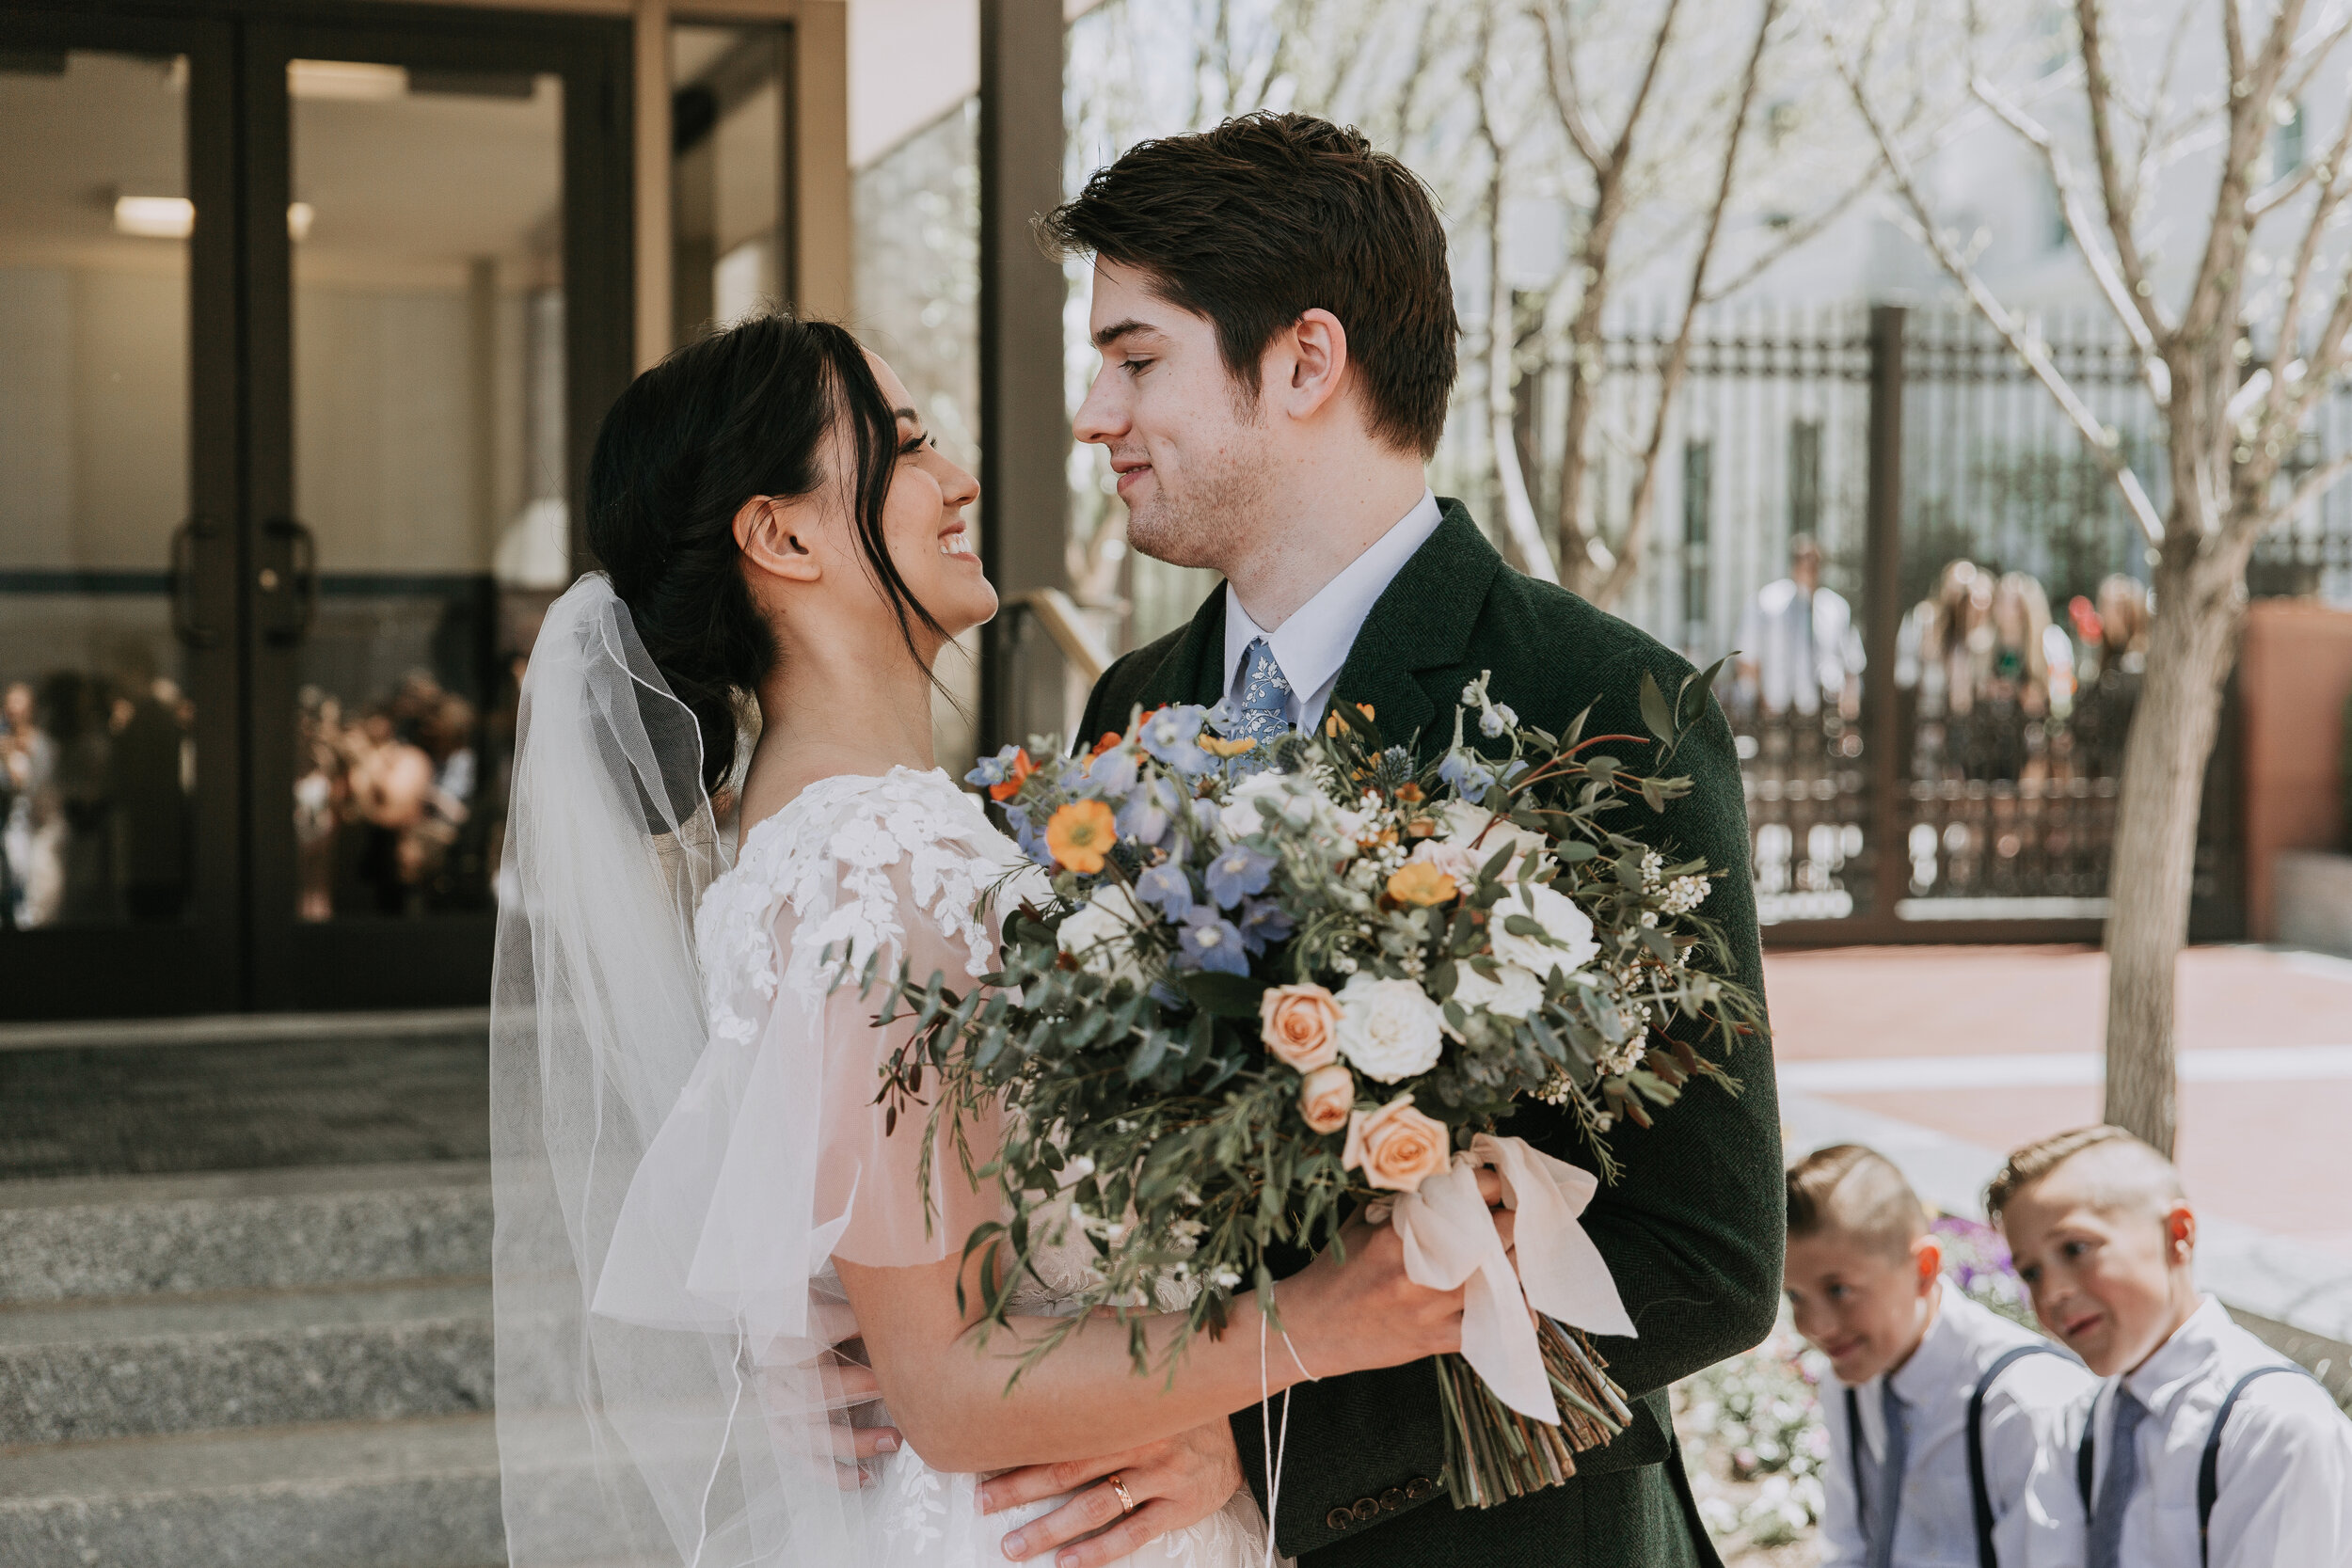 Spring Wedding in Salt Lake City - Salt Lake City Wedding Photographer - Utah Wedding Photography by Natalie Michelle Photo Co.